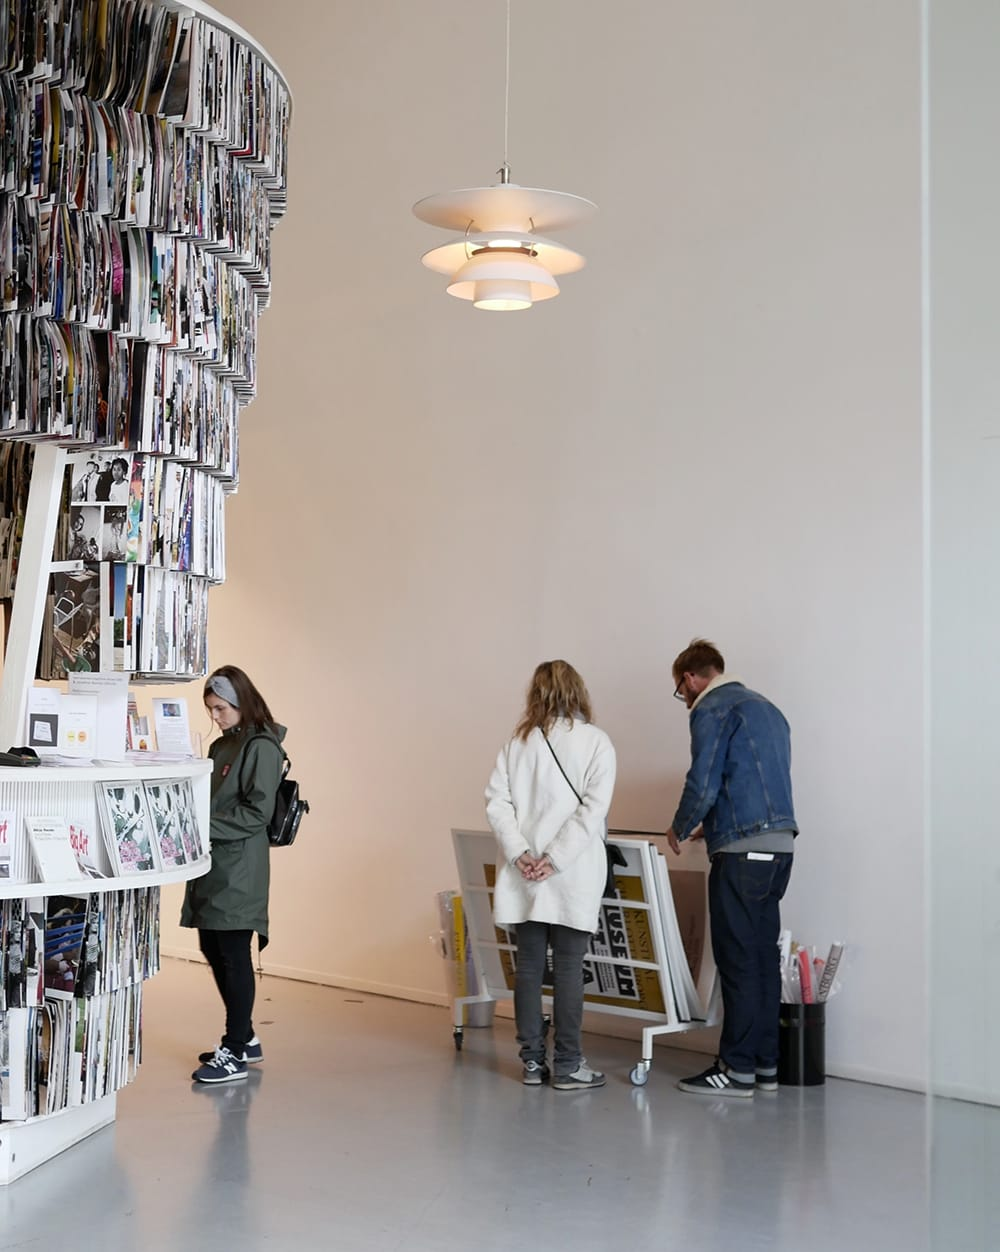 Several visitors browsing posters in a design store. Copenhagen